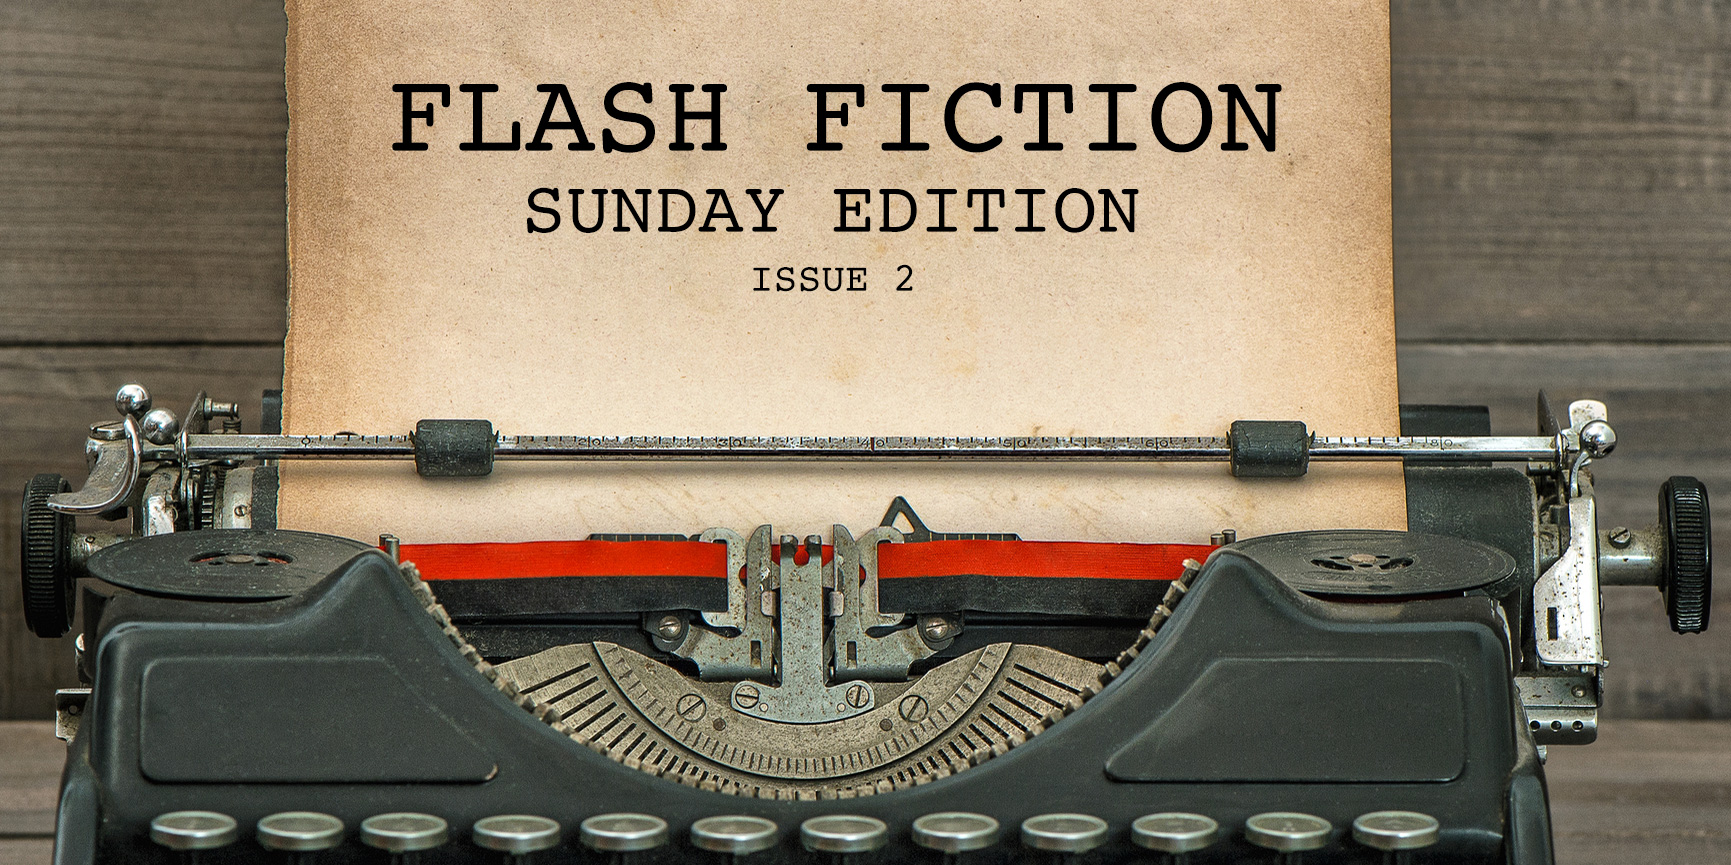 Flash Fiction Sunday Edition - Issue 2